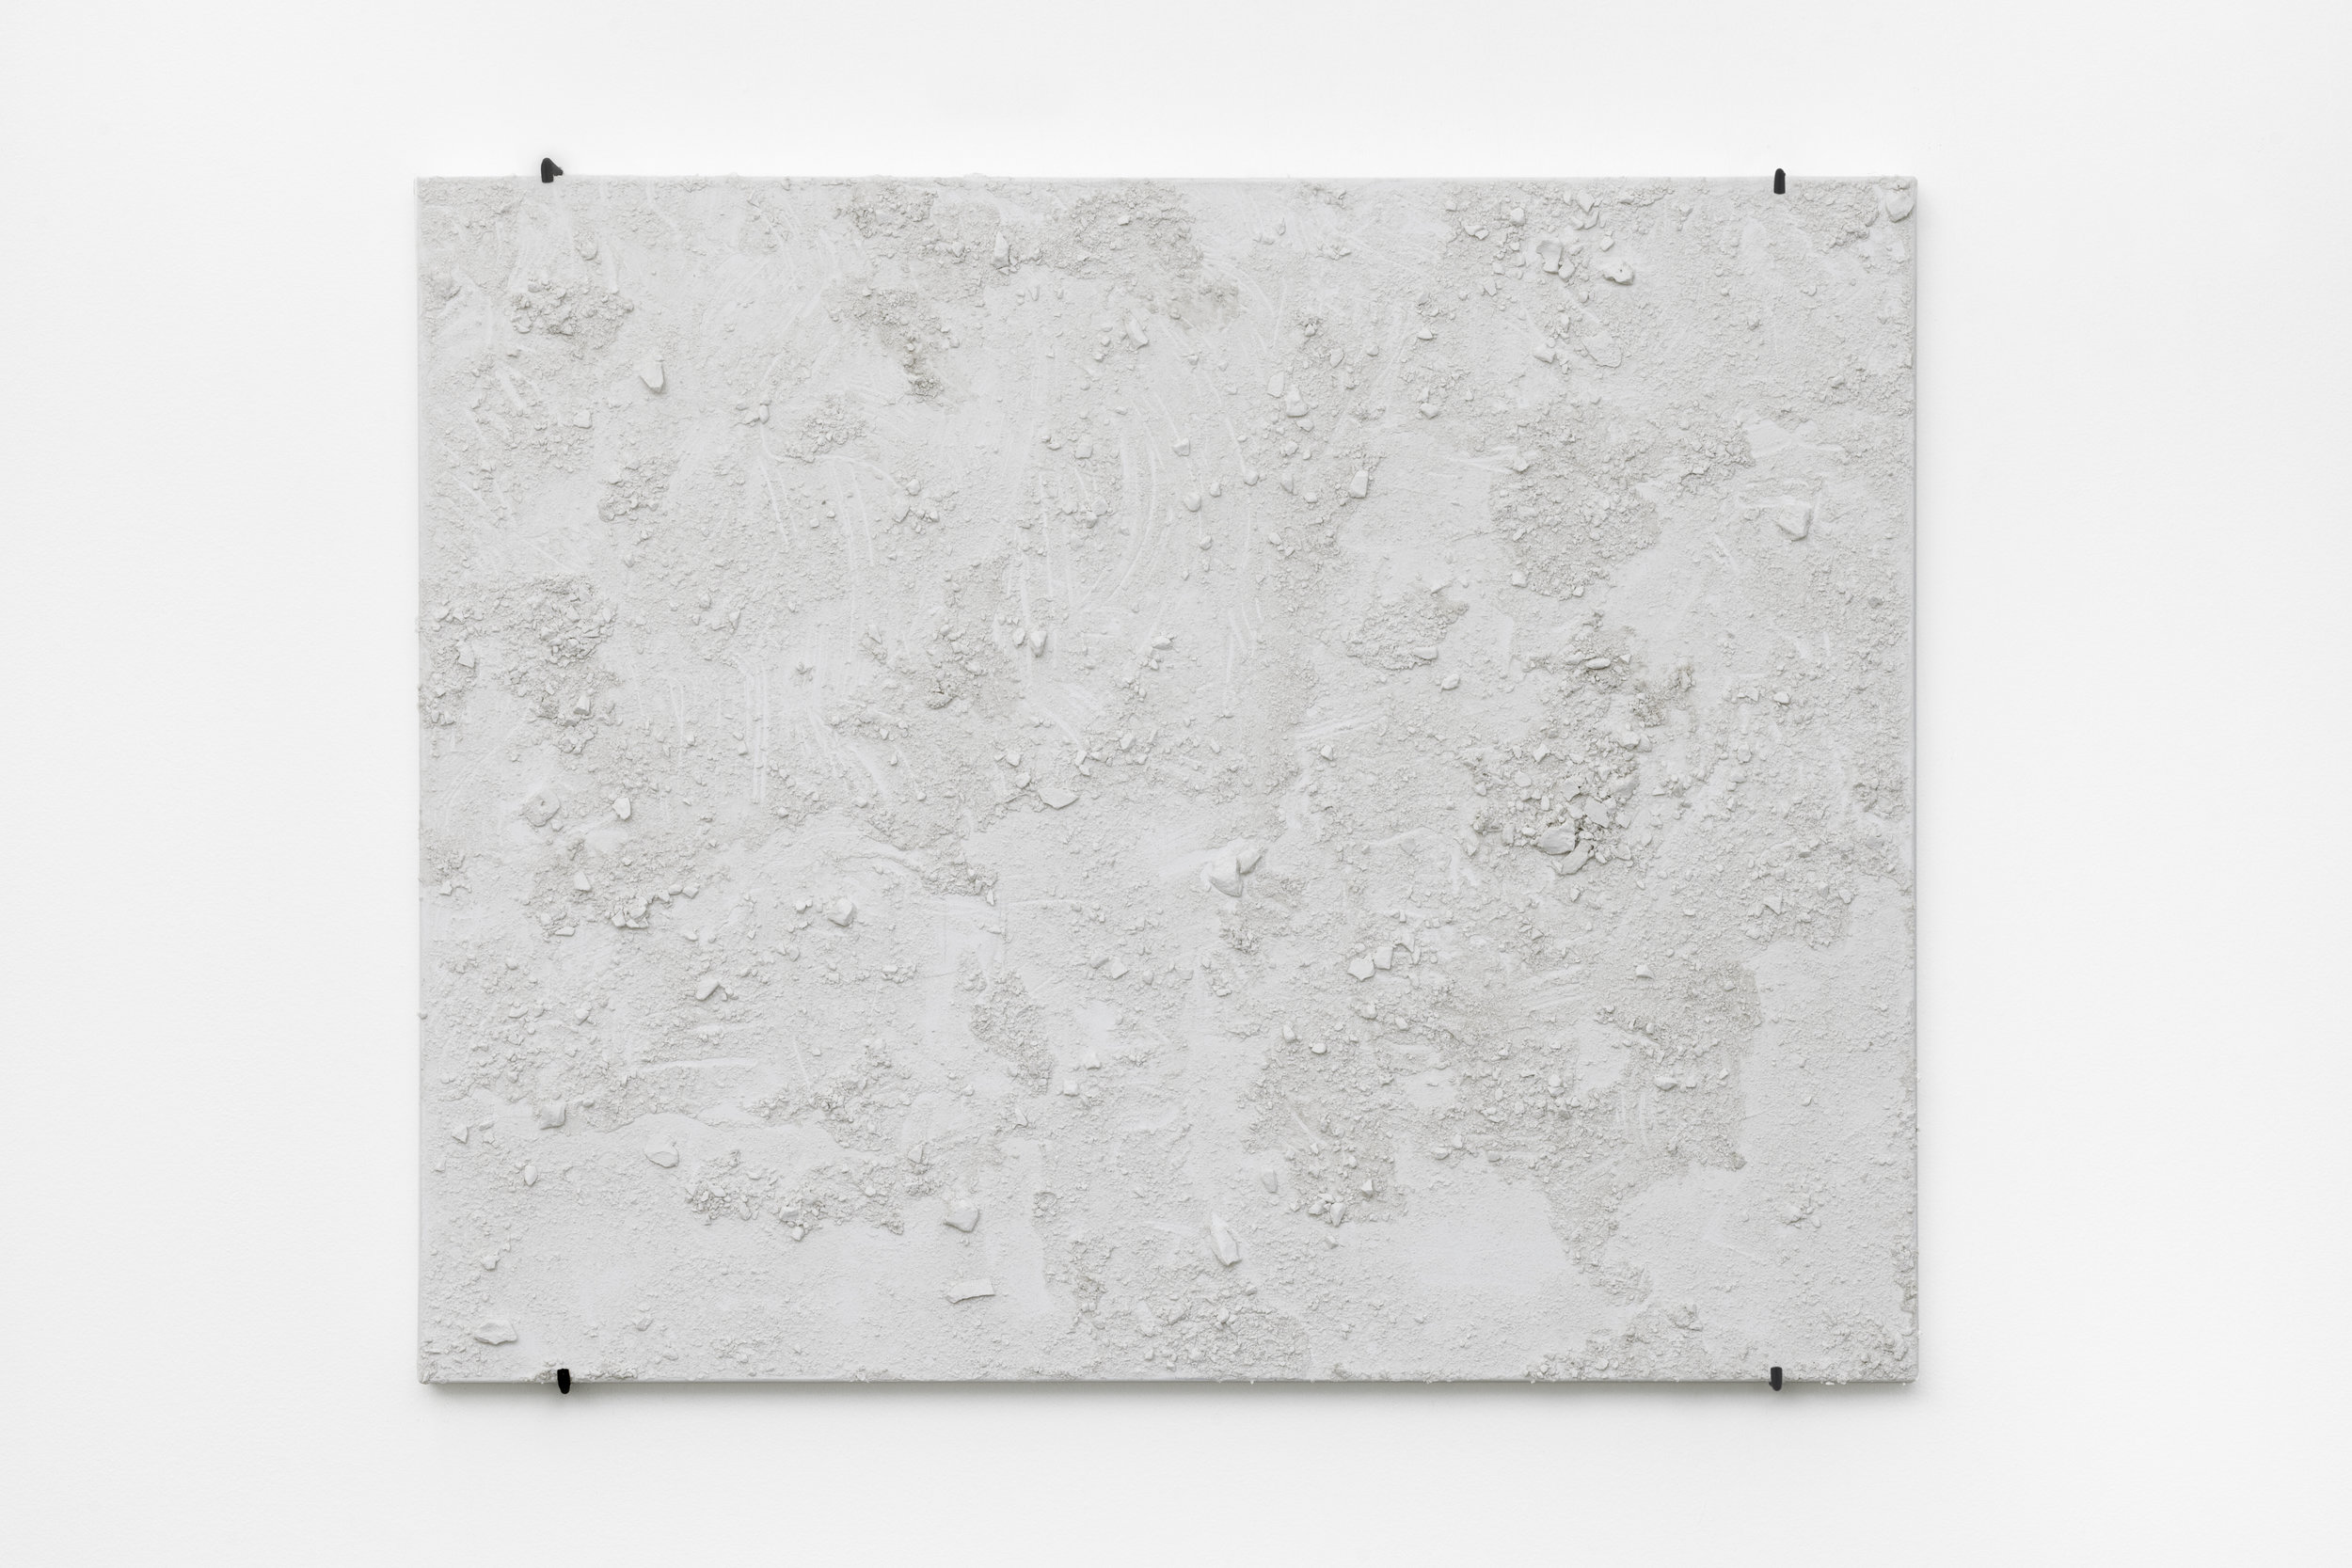 Sculpture on Canvas , 2016 plaster on canvas, 80 x 100 cm